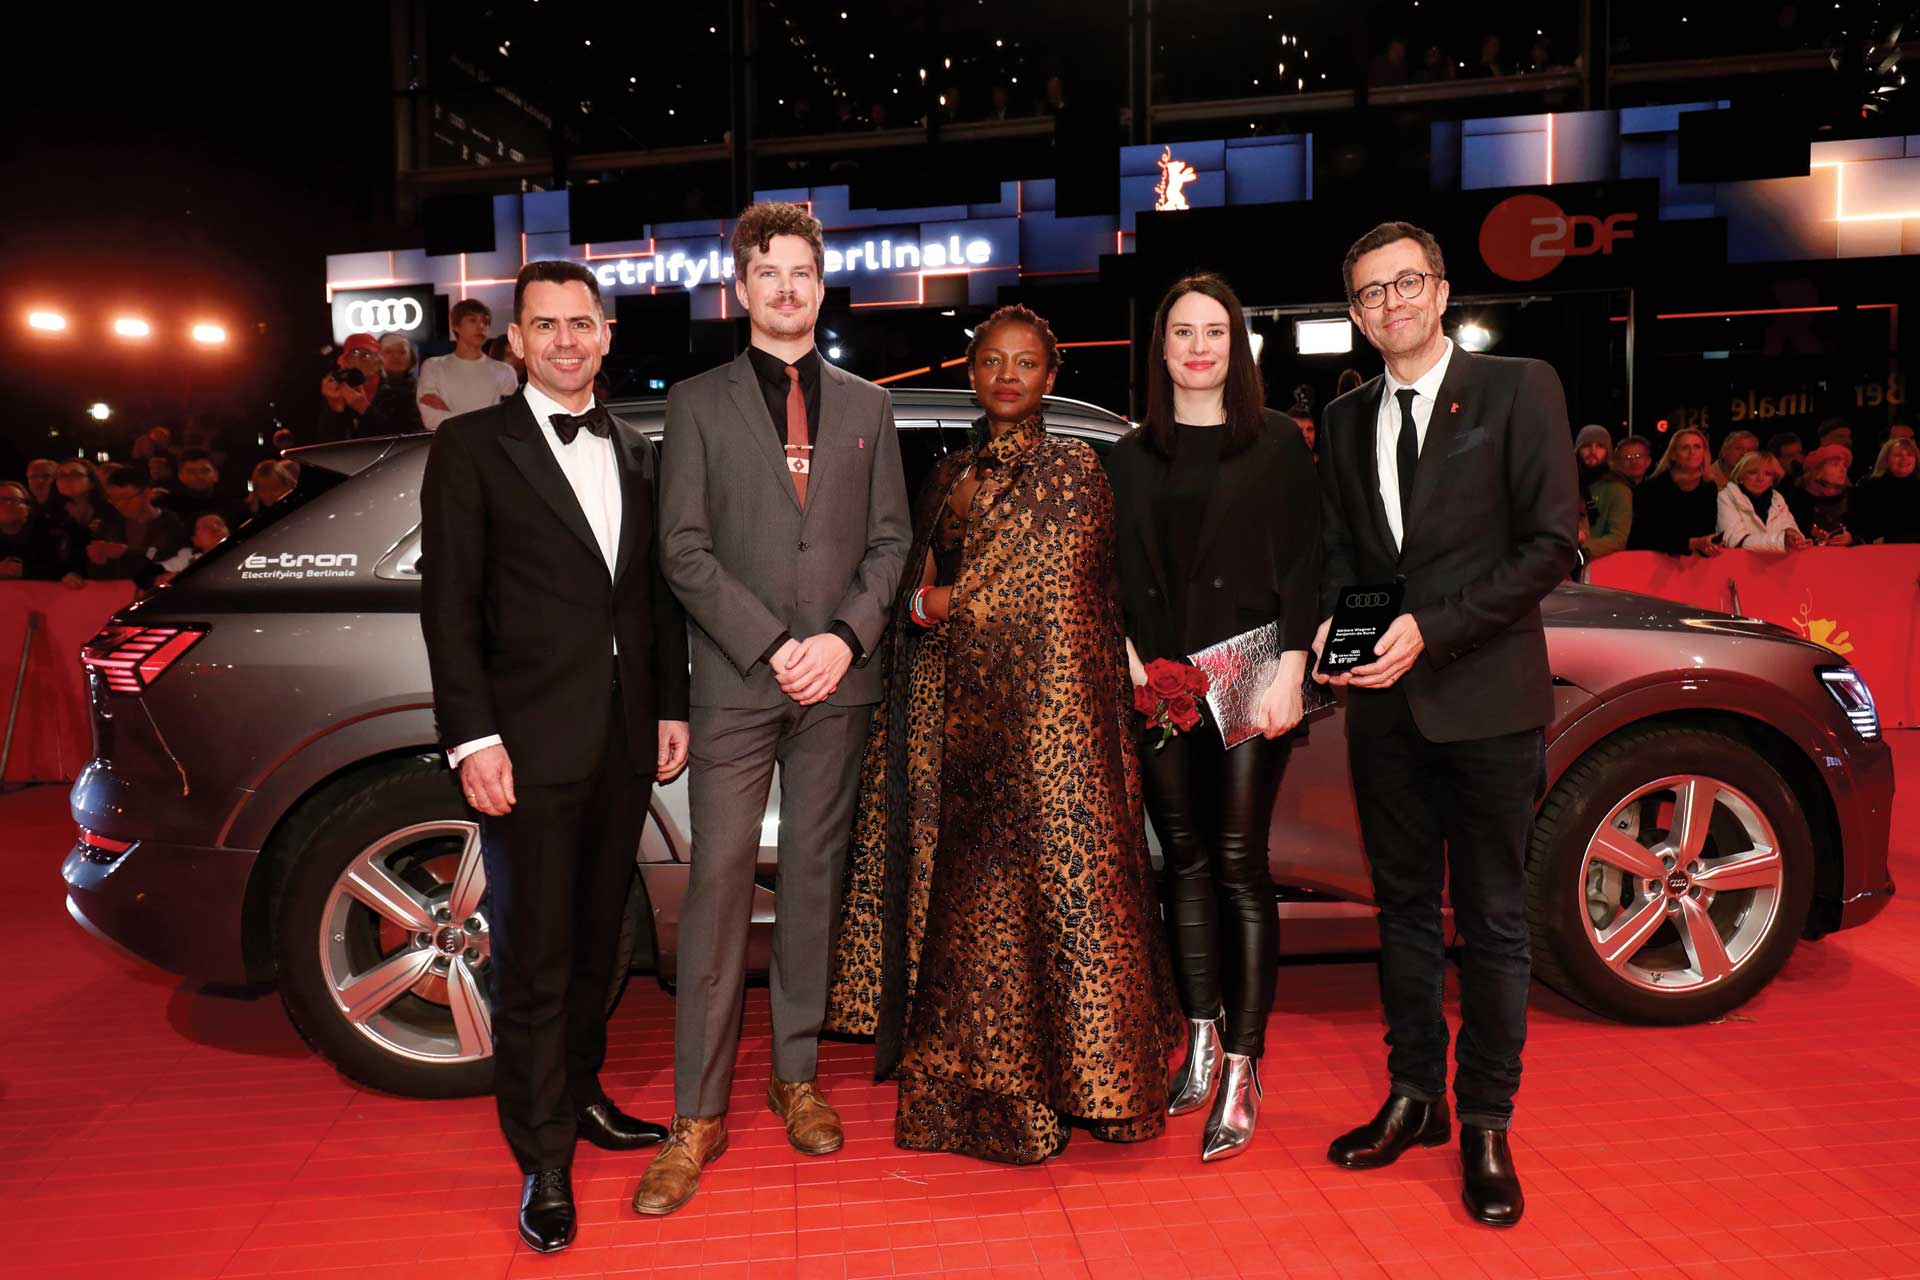 Berlinale Open House Program Audi Awards